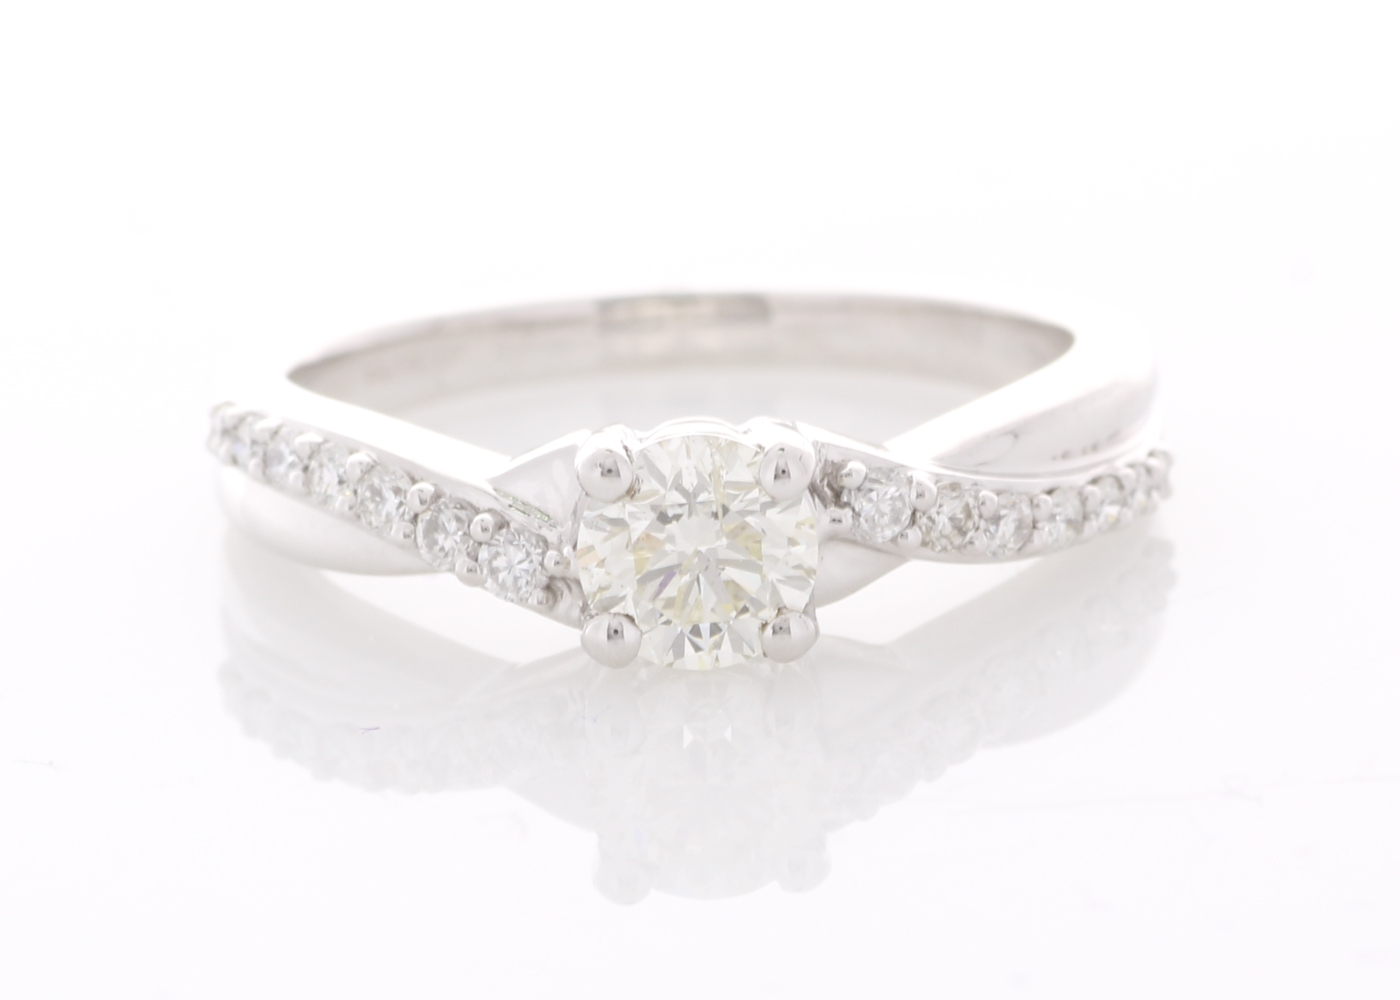 Lot 14 - 18ct White Gold Fancy Claw Set Diamond Ring 0.70 Carats